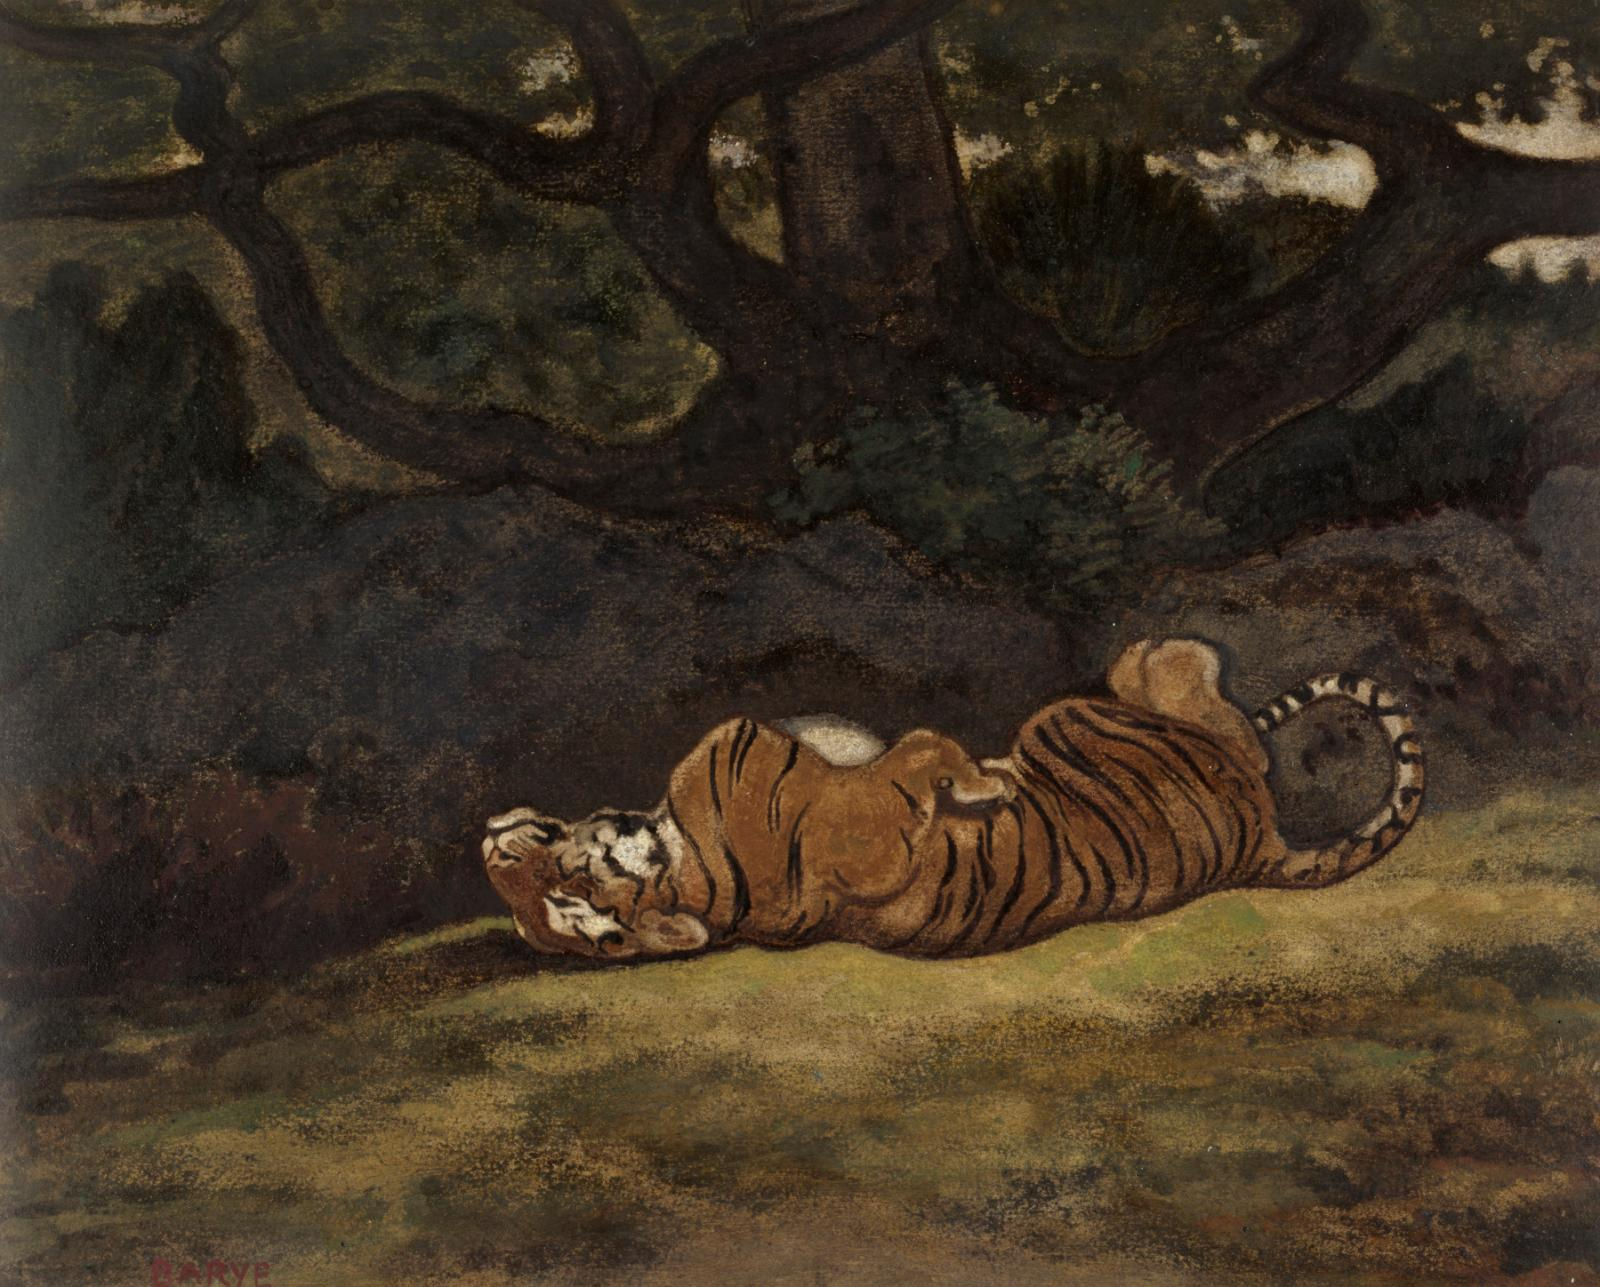 Antoine-Louis Barye (1795-1875), Tiger Rolling, c. 1850-1869, watercolor on moderately textured, moderately thick cream wove paper, 23.8 x